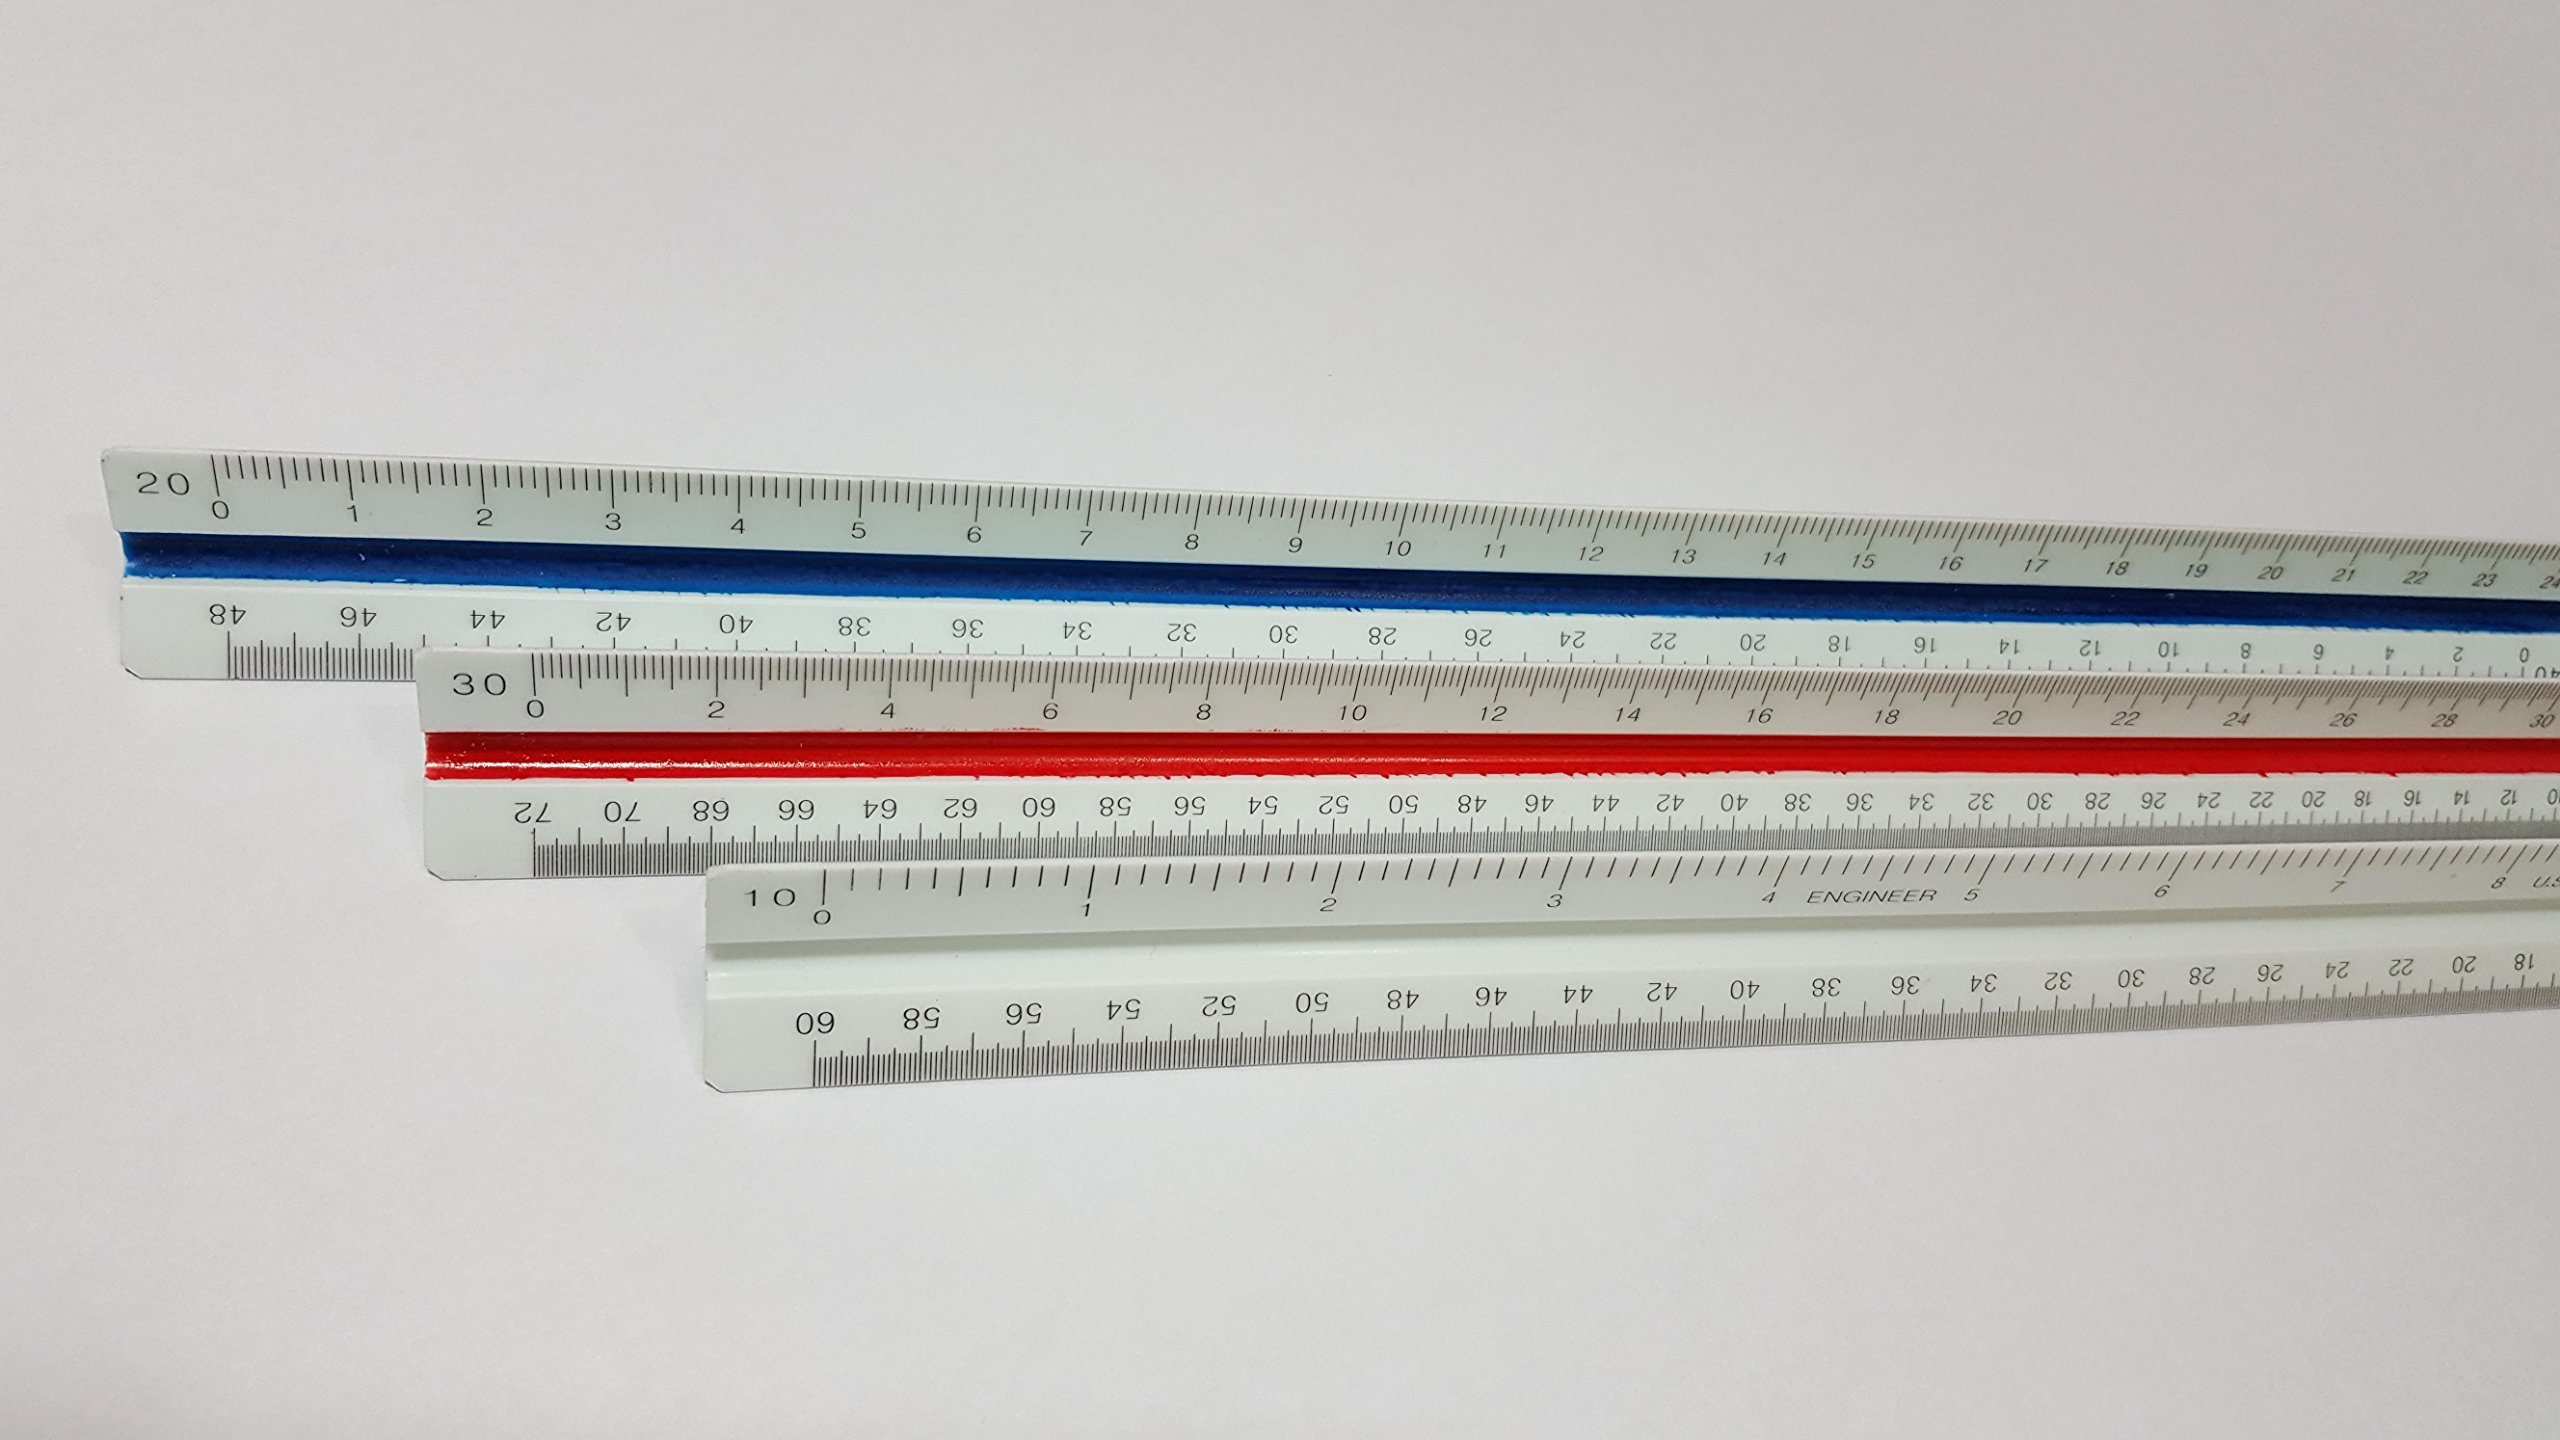 Triangular Engineering Scale Ruler by Ferocious Viking with Color-Coded Grooves with Fractions of an inch 1:10, 1:20, 1:30, 1:40, 1:50, 1:60